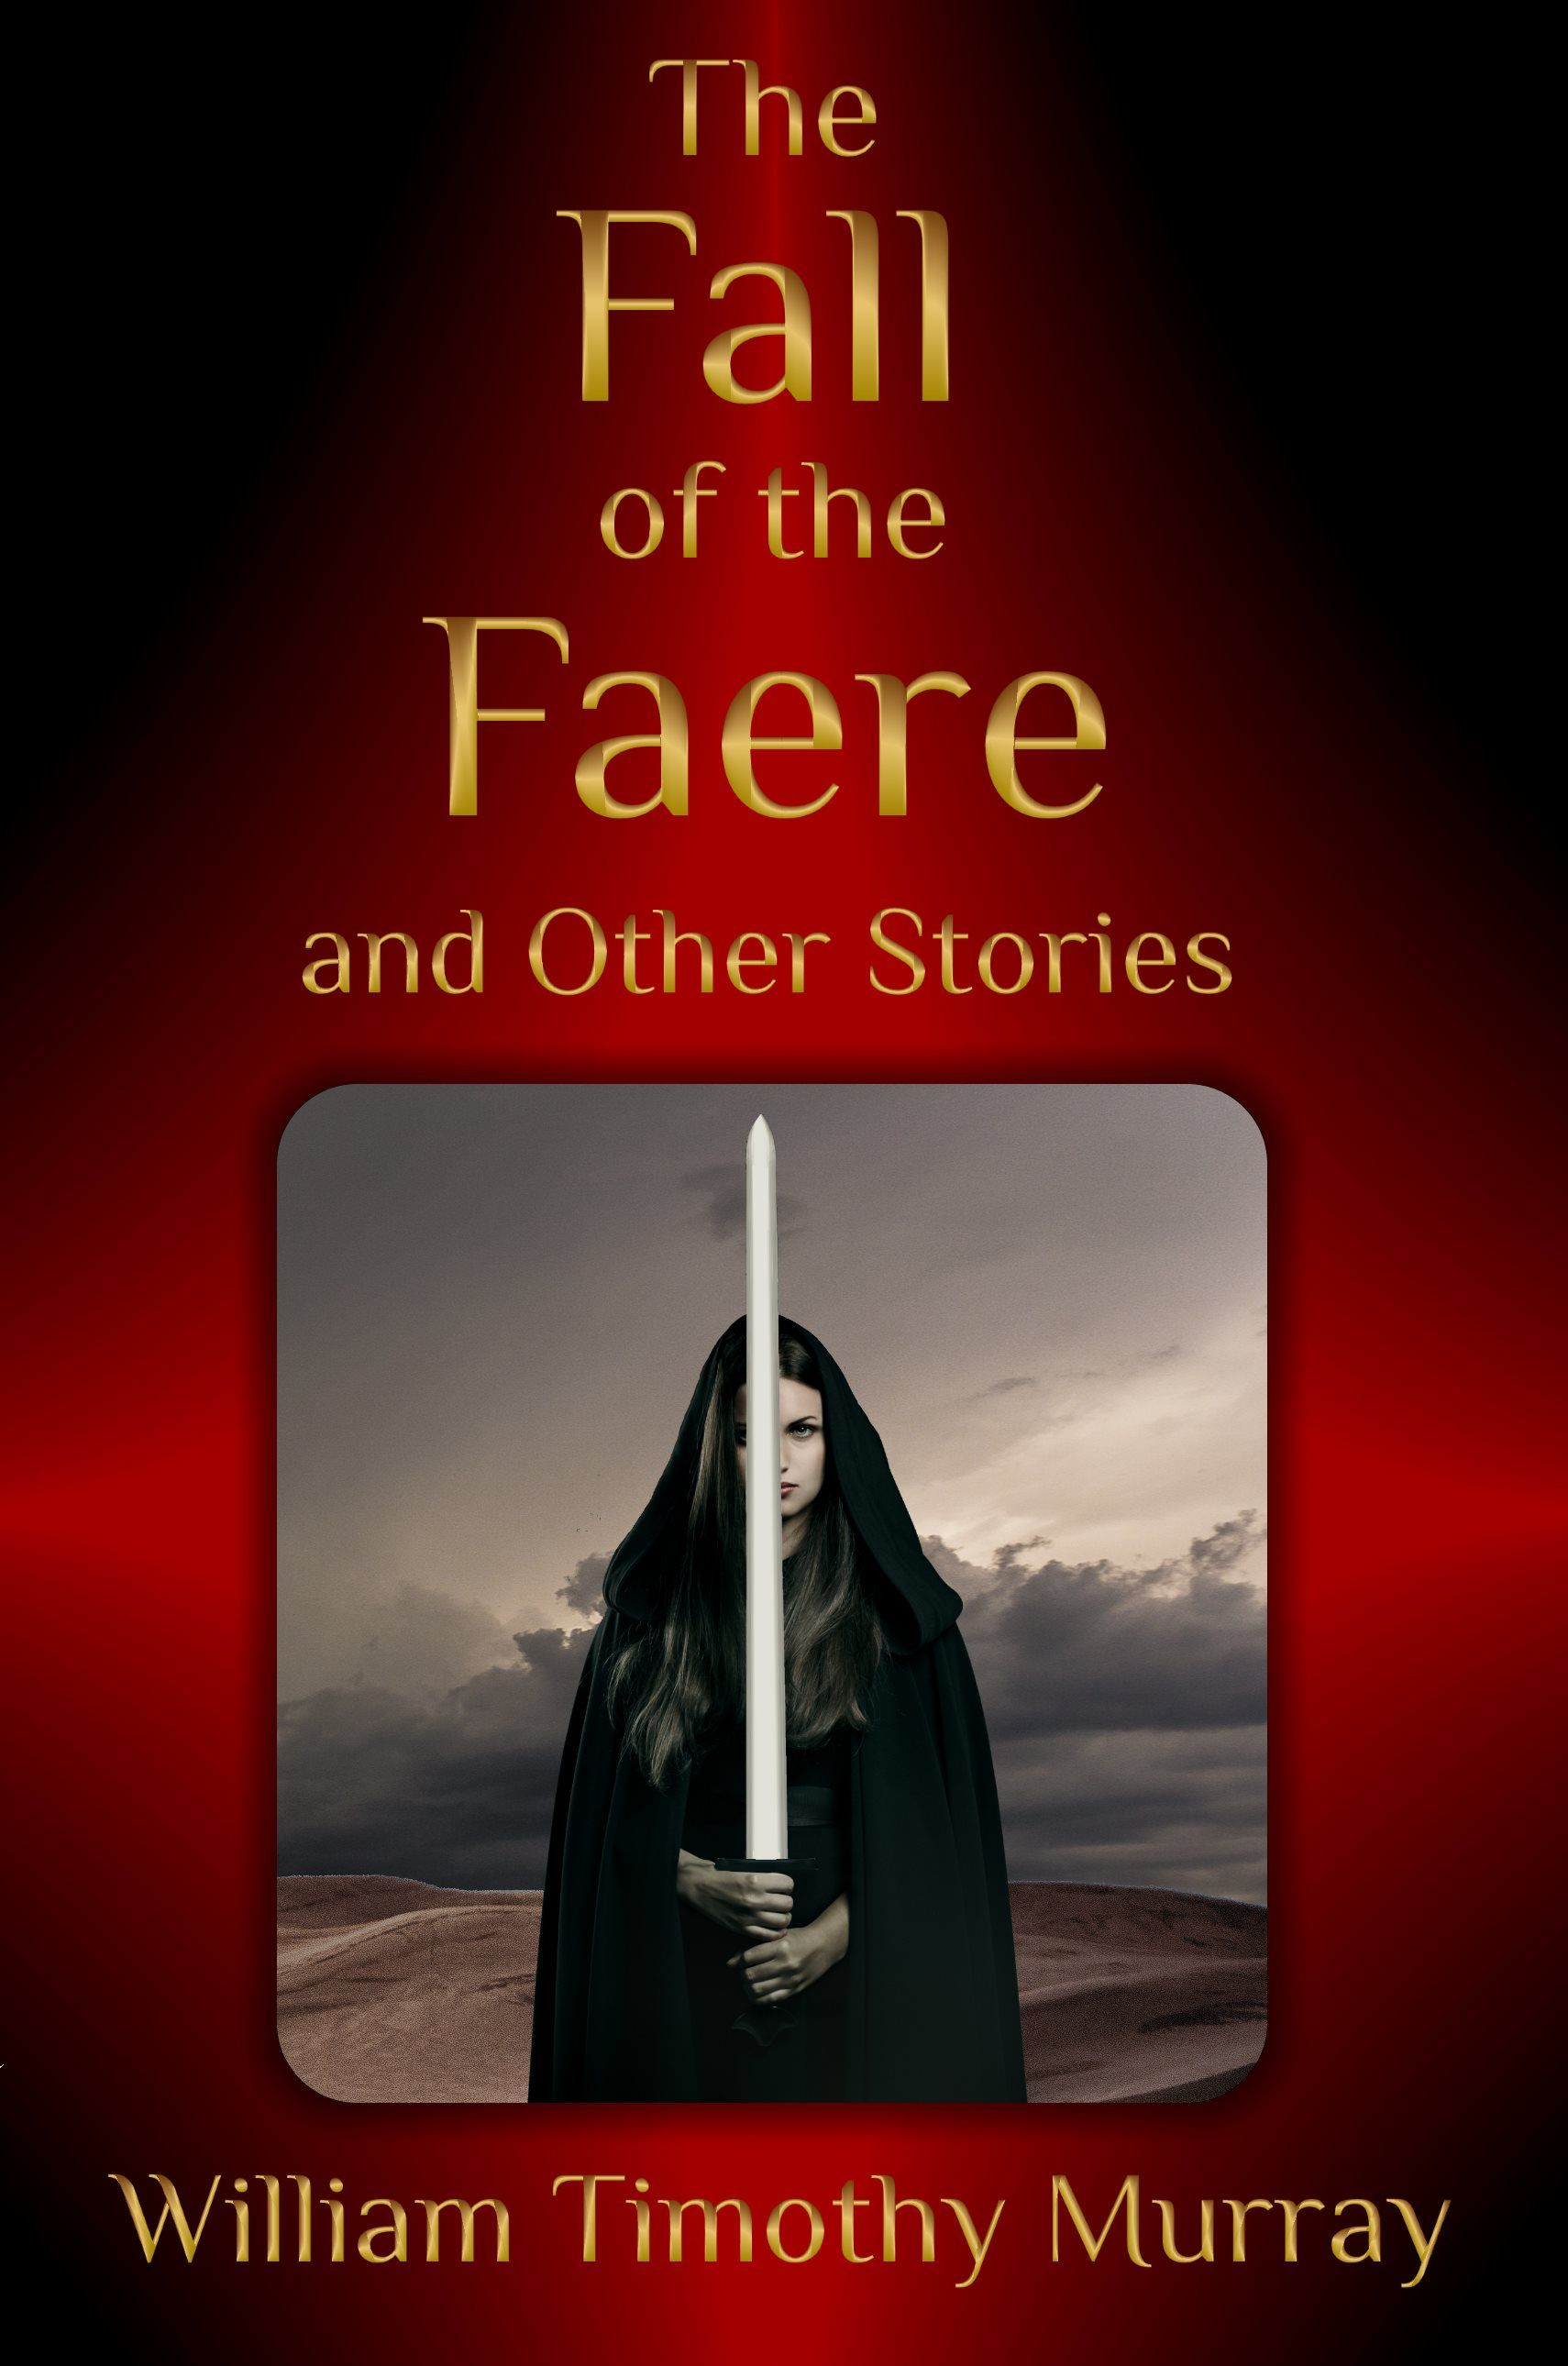 The Fall Of The Faere And Other Stories You Need Not Have Read The